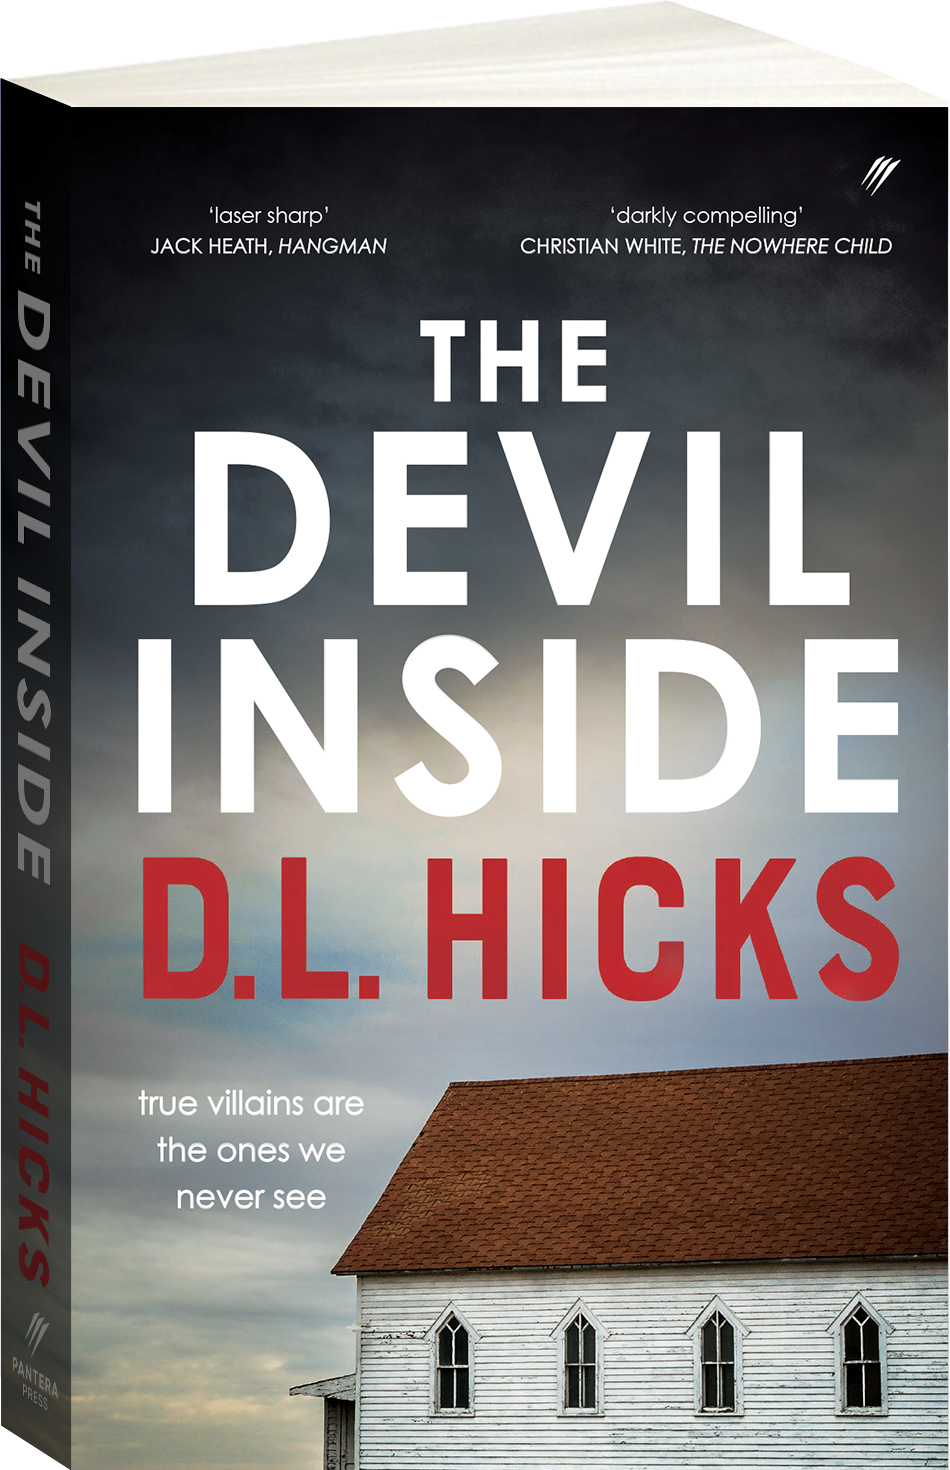 The Devil Inside by D.L. Hicks event image